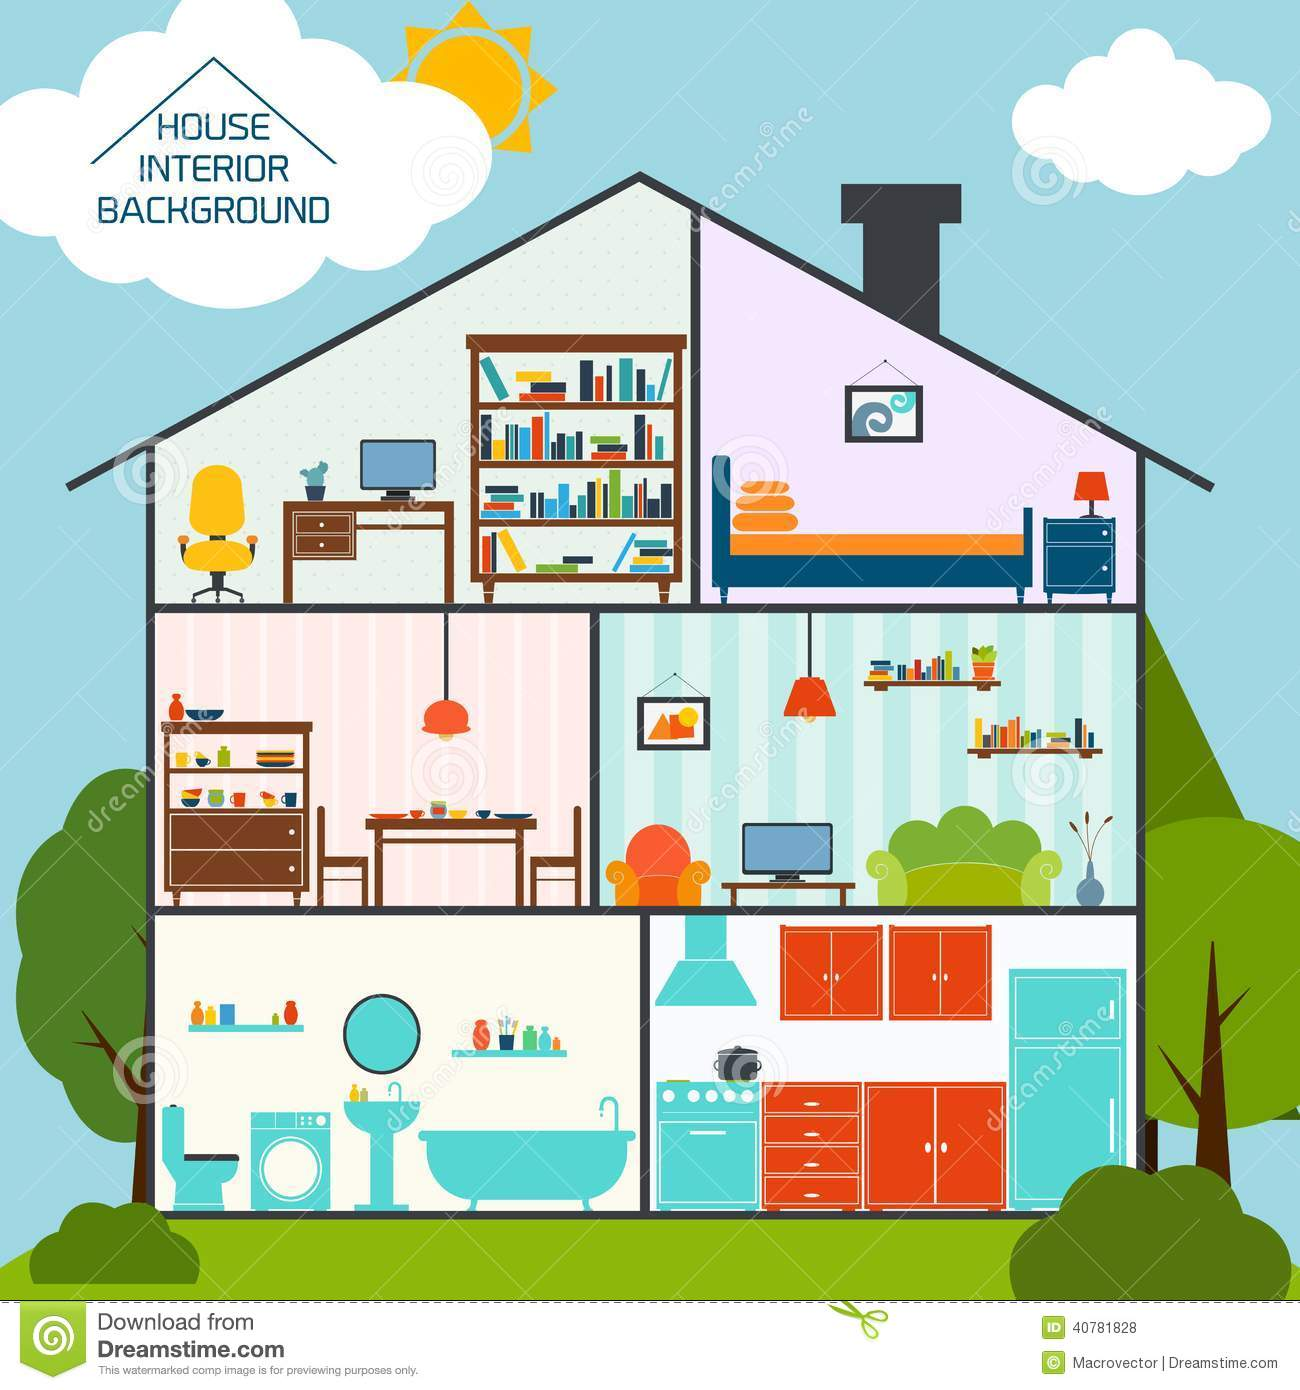 House Interior Background Stock Vector Illustration Of